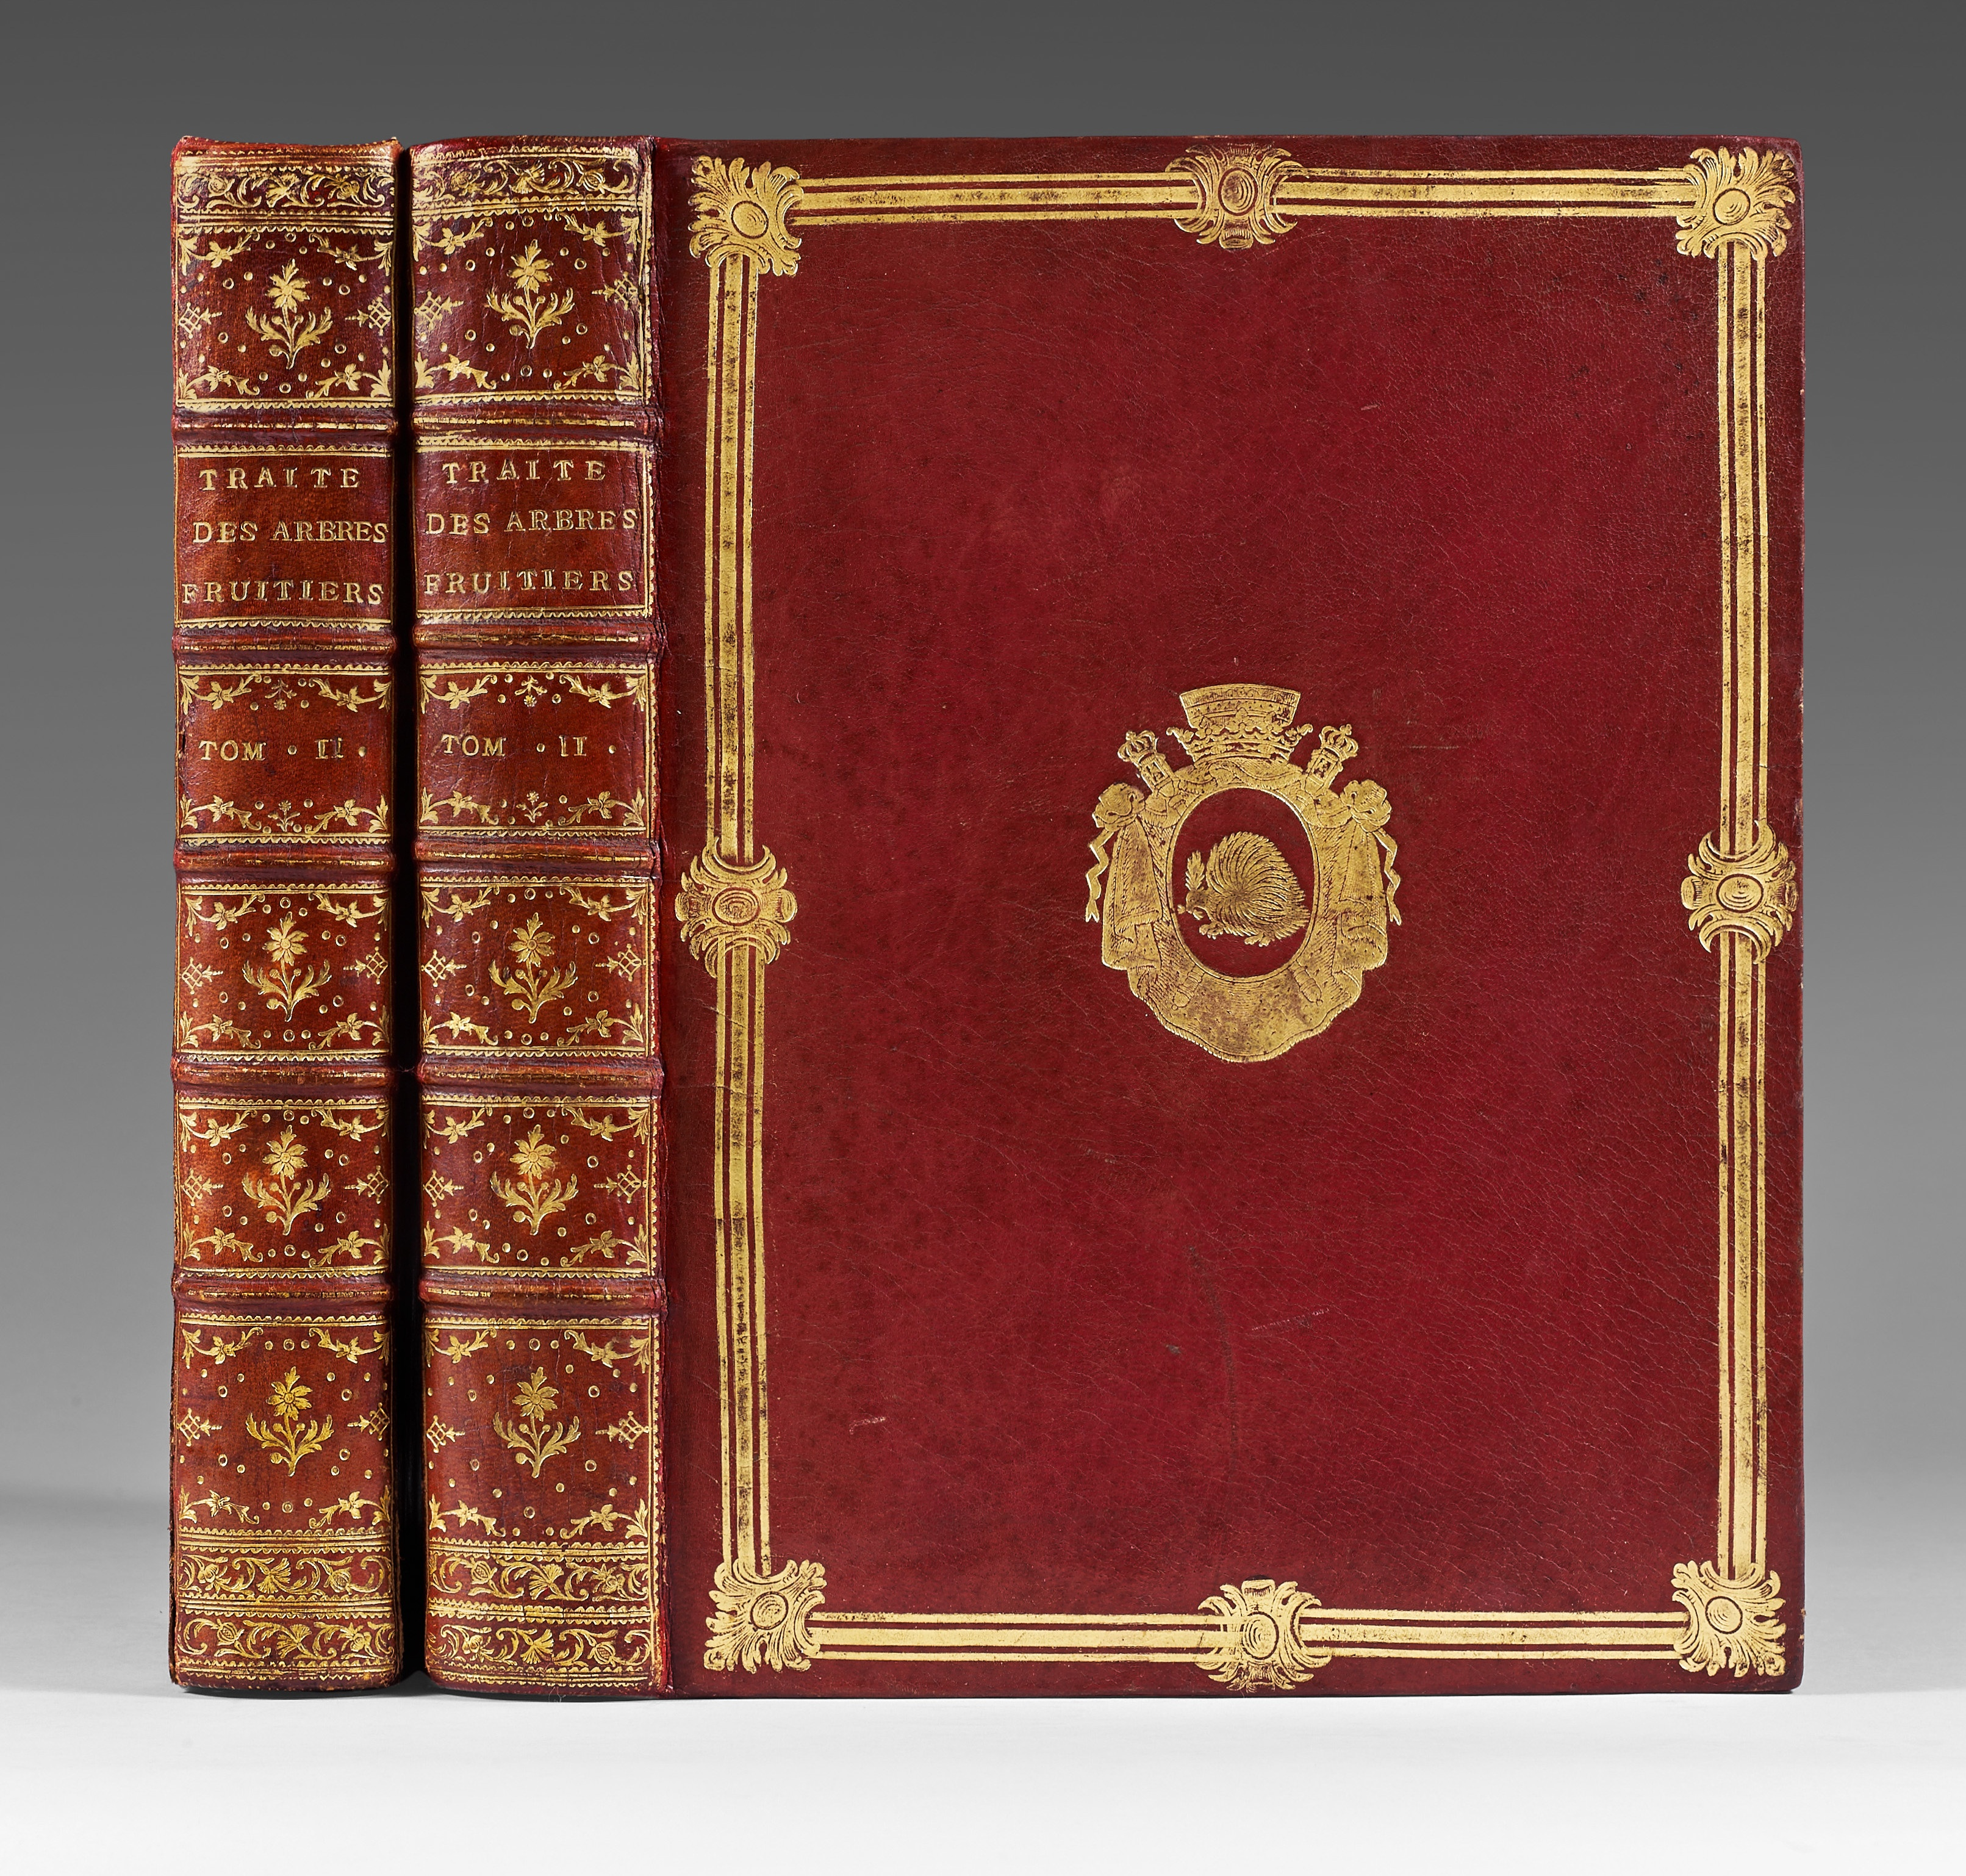 DUHAMEL-DU-MONCEAU-Henri-Louis-Traite-des-arbres-fruitiers--First-edition-of-the-most-